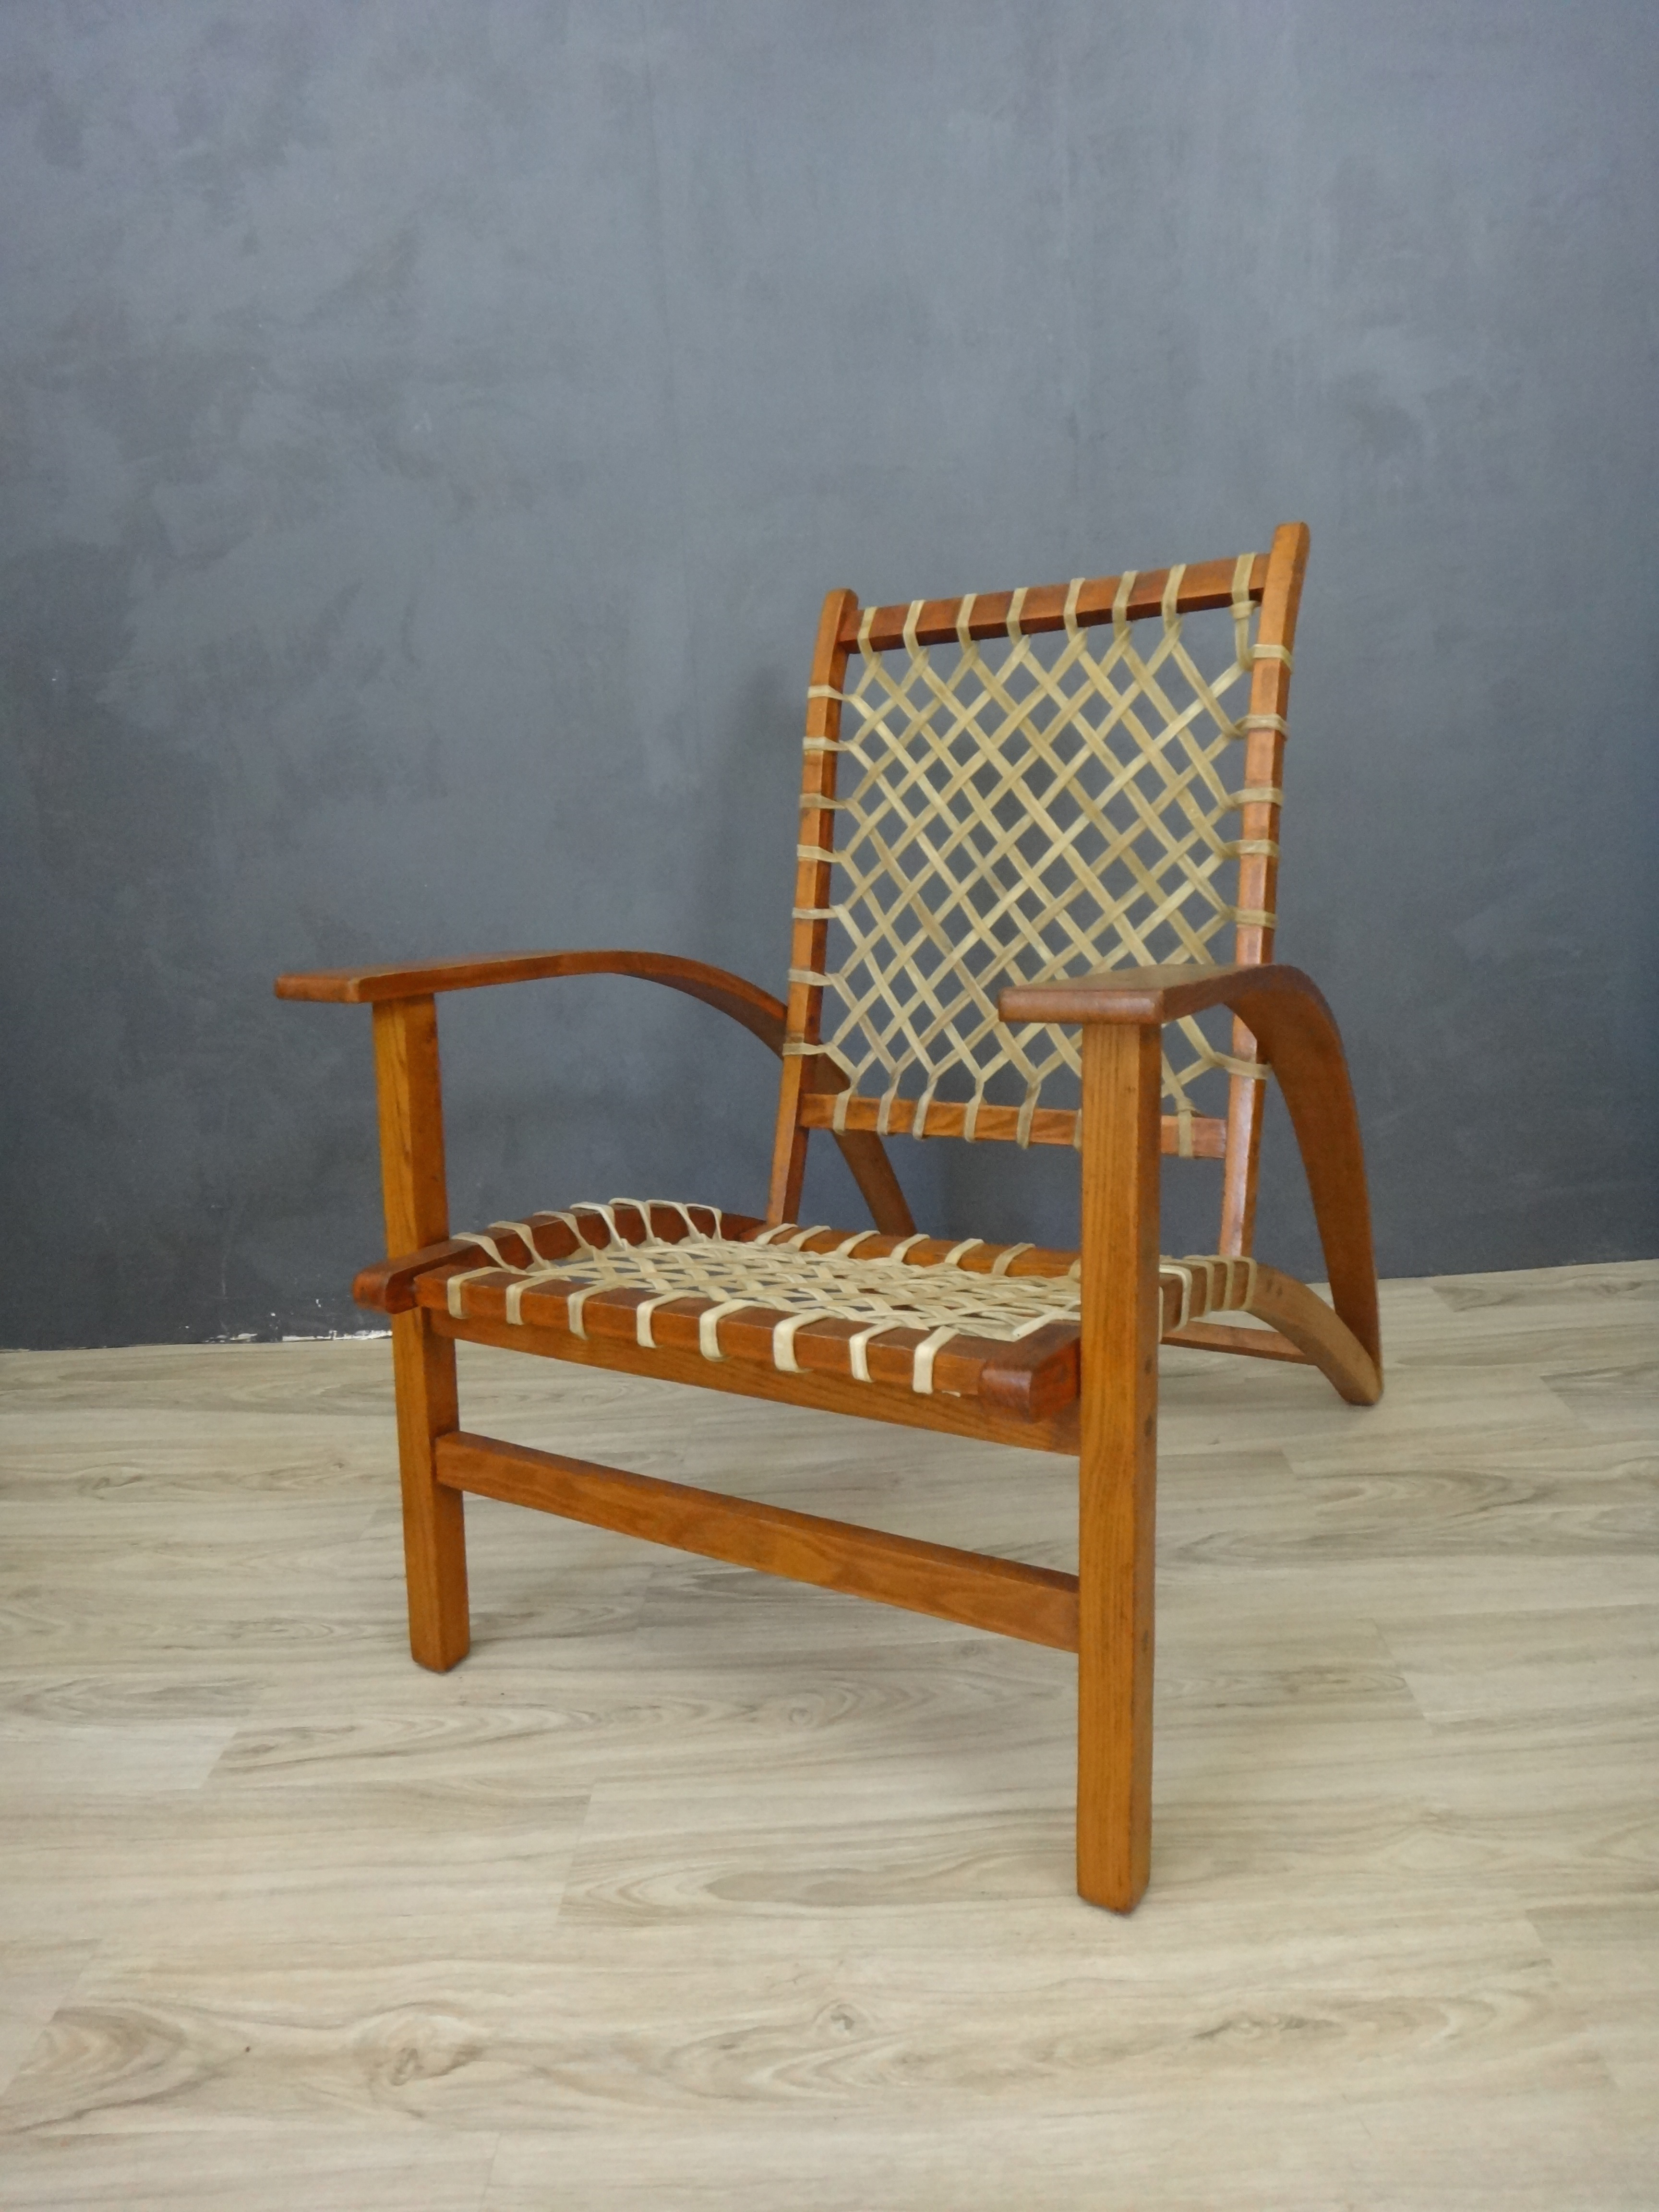 Designed In The 1940s By Carl Koch For The Vermont Tubbs Company, This Is A